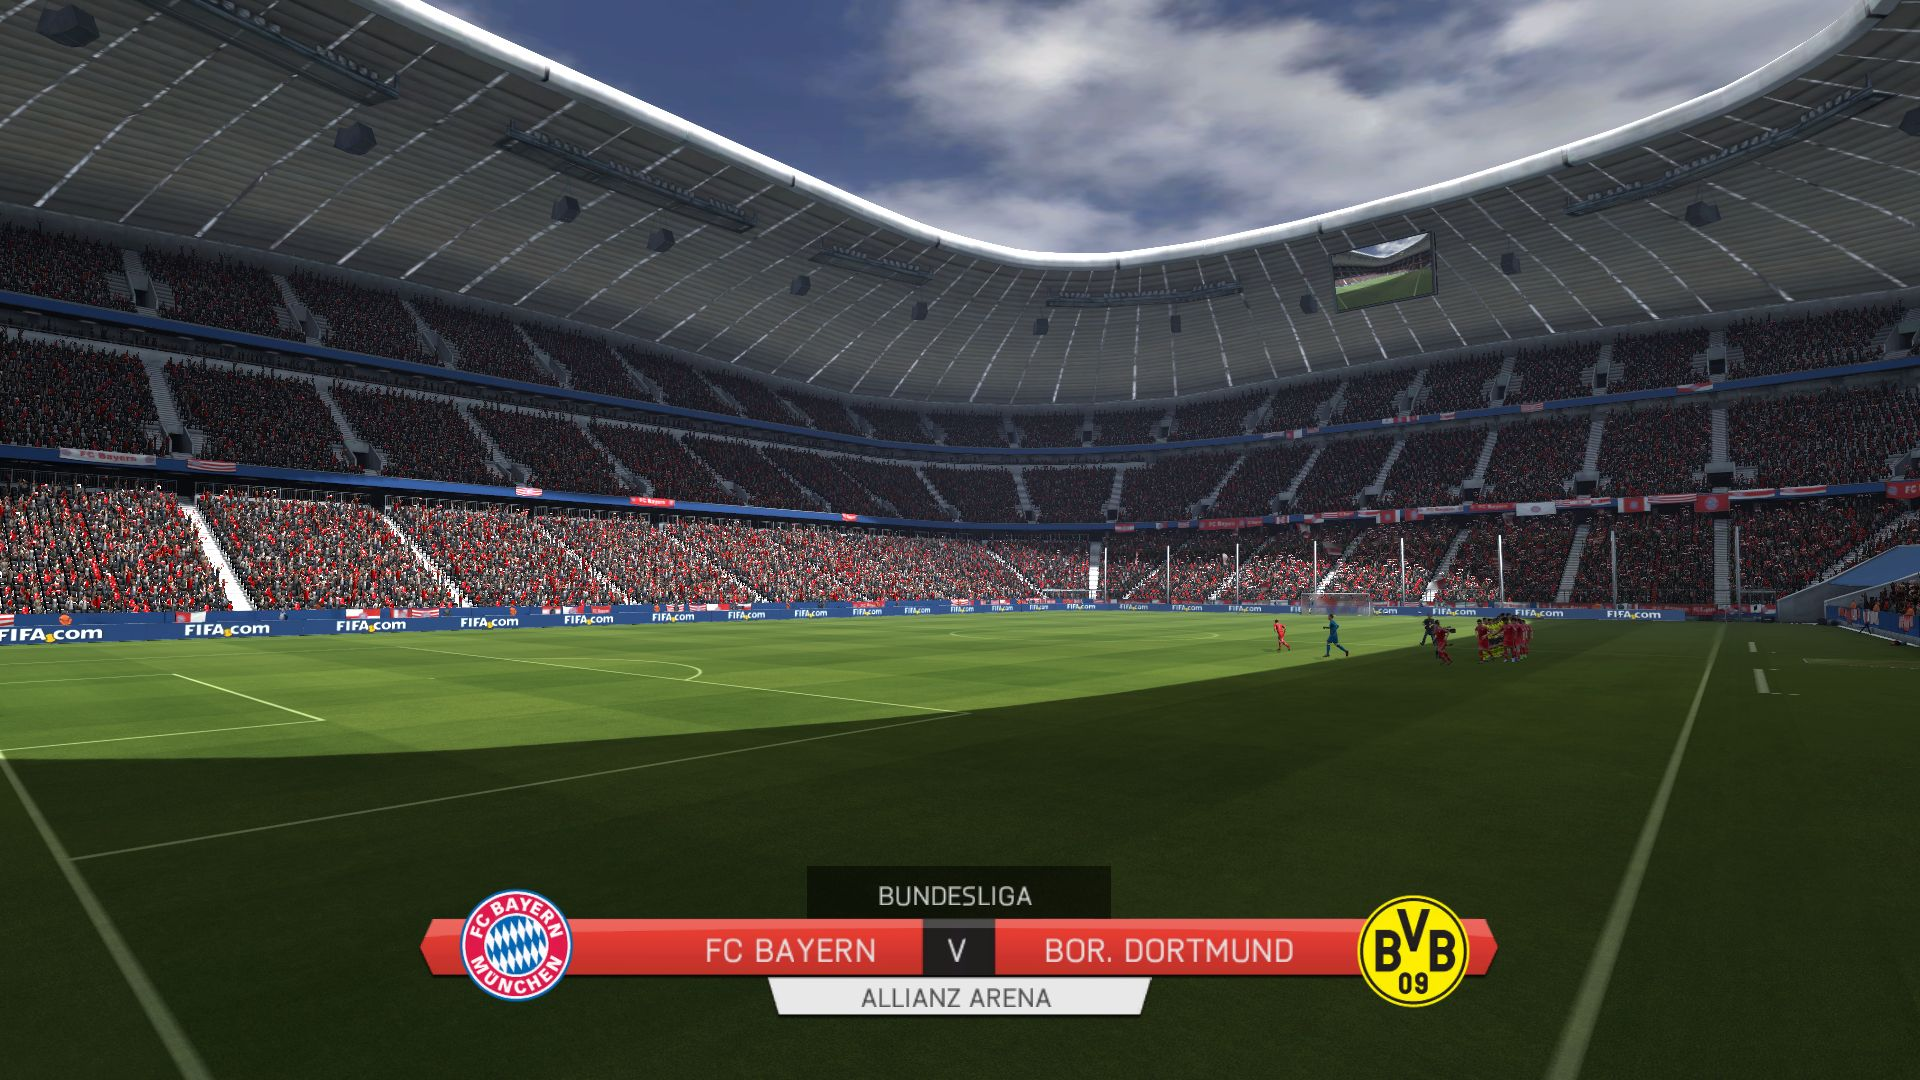 Fifa 14 benchmarked notebookcheck reviews fifa 14 voltagebd Image collections